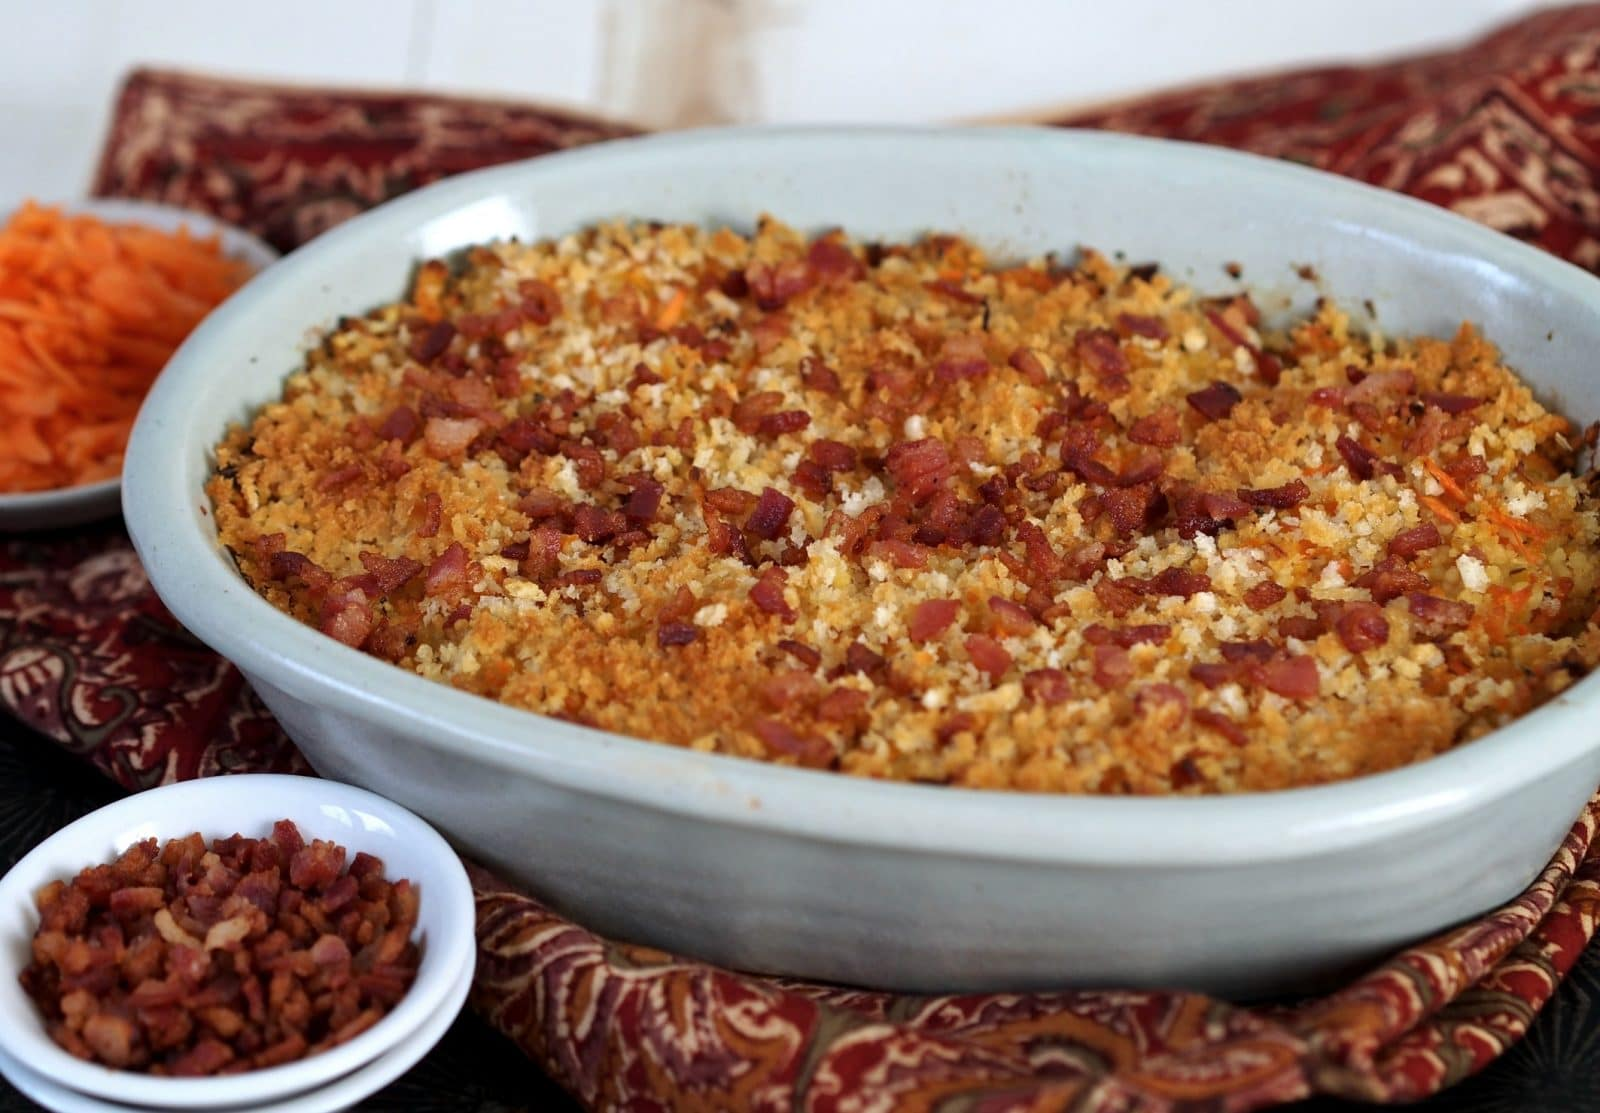 Honey Goat Cheese Carrot & Couscous Casserole is a delicious, healthier alternative to cheese-laden casseroles. Simply Sated